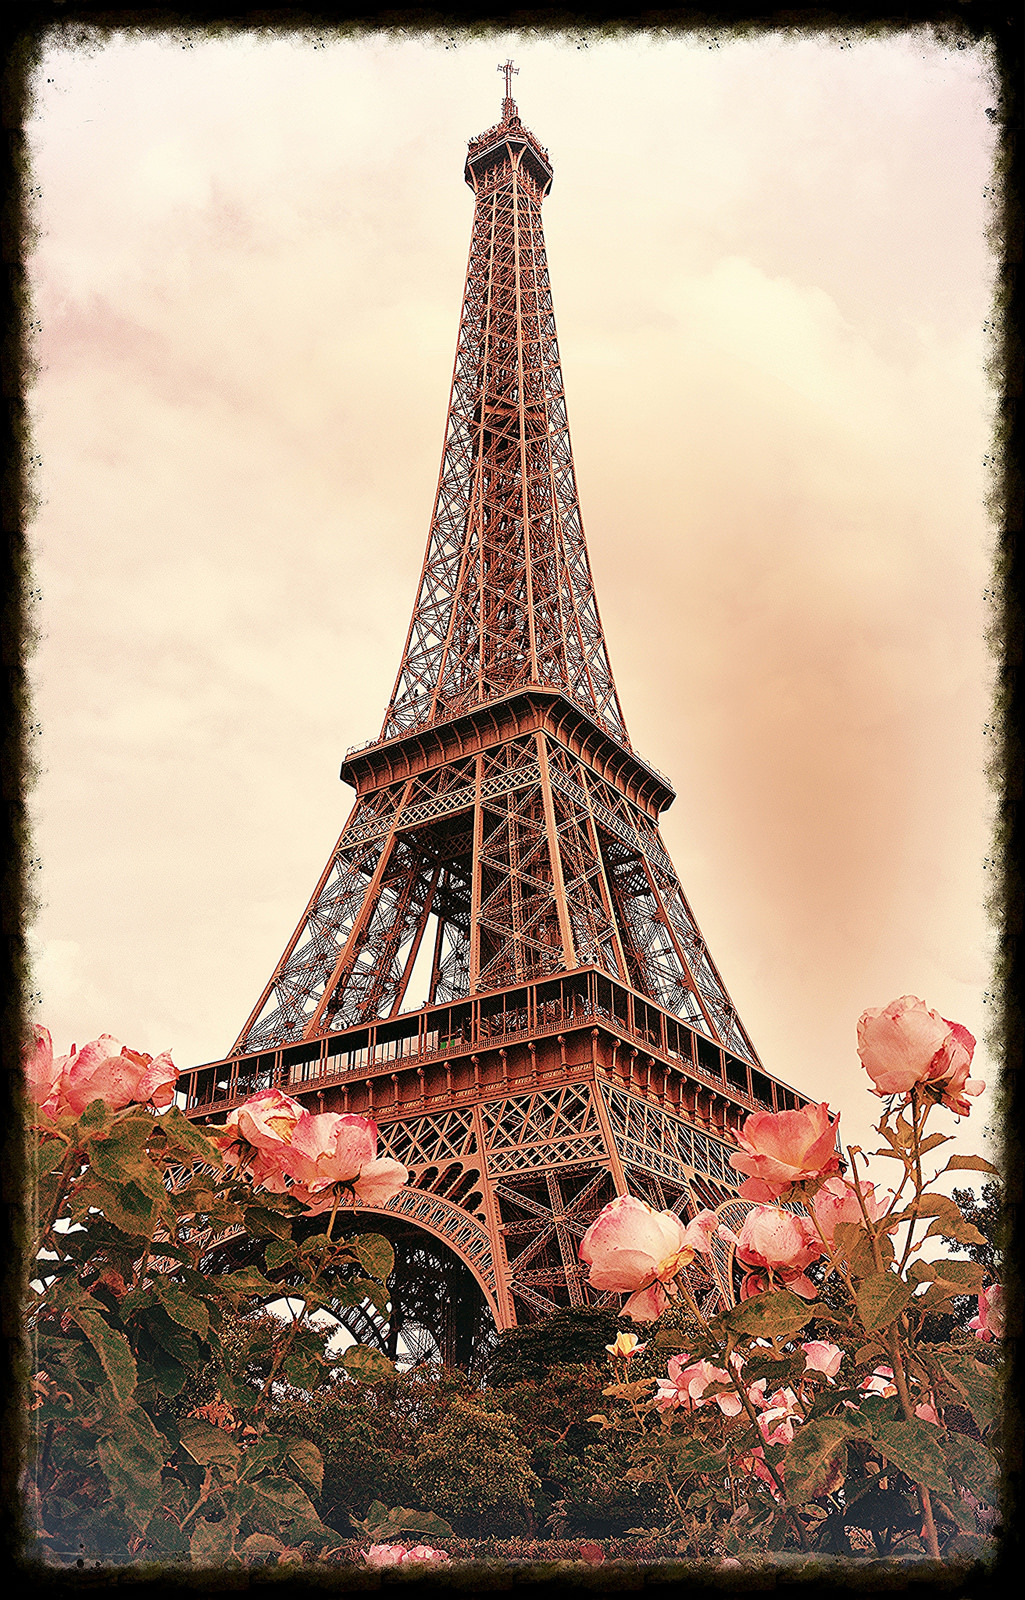 Eiffel Tower Paris France Classic With Roses Frederico Domondon